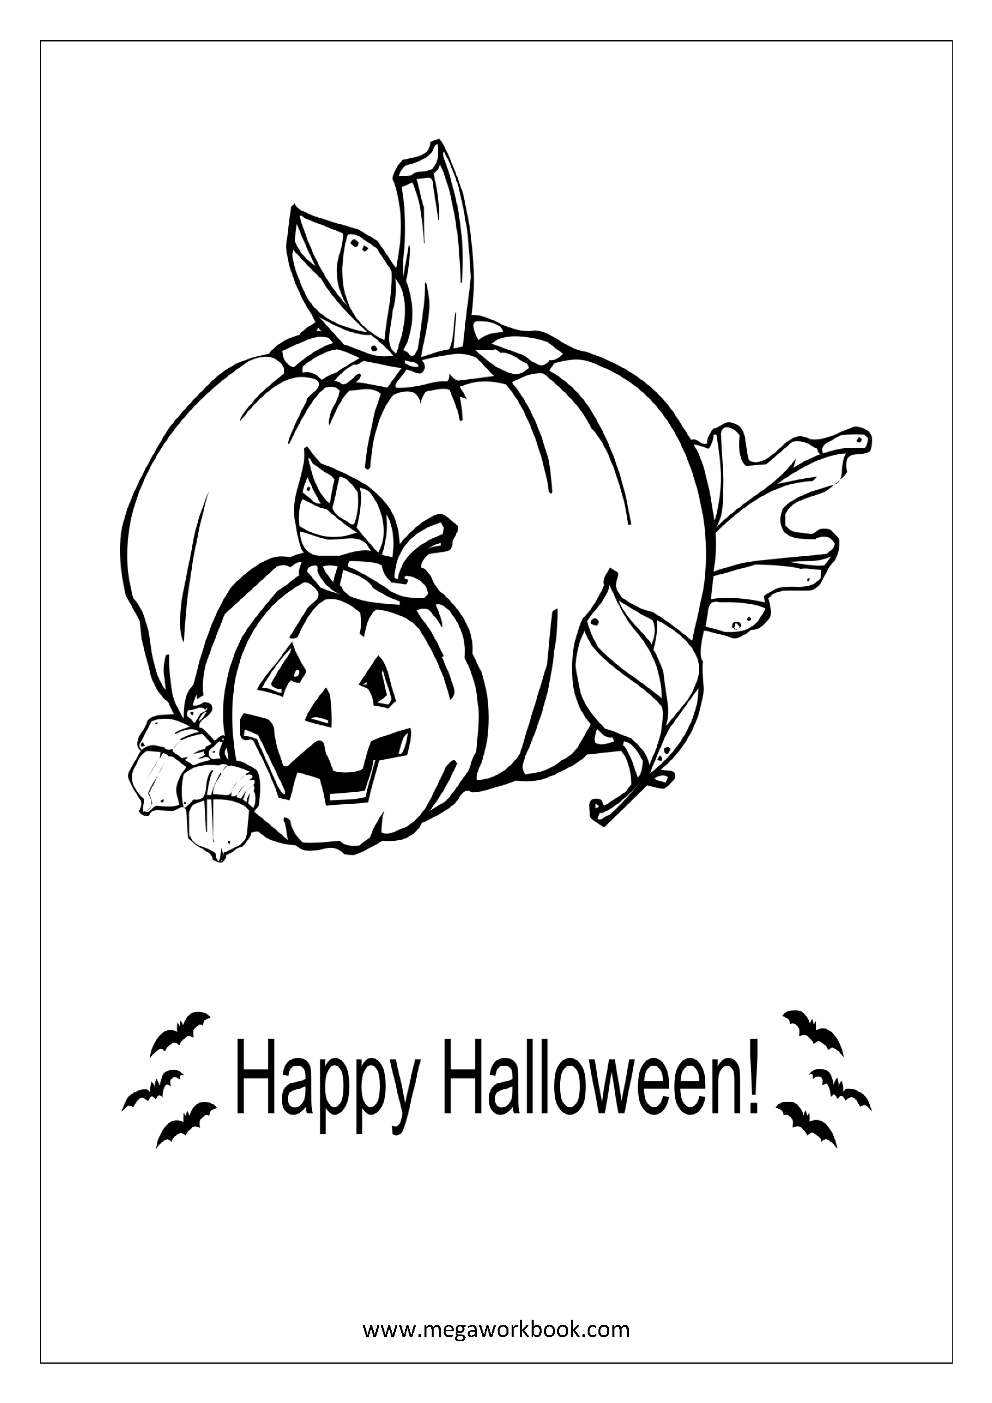 Halloween Coloring Pages Halloween Coloring Sheets Halloween Pictures To Color Free Printable Halloween Coloring Pages Megaworkbook